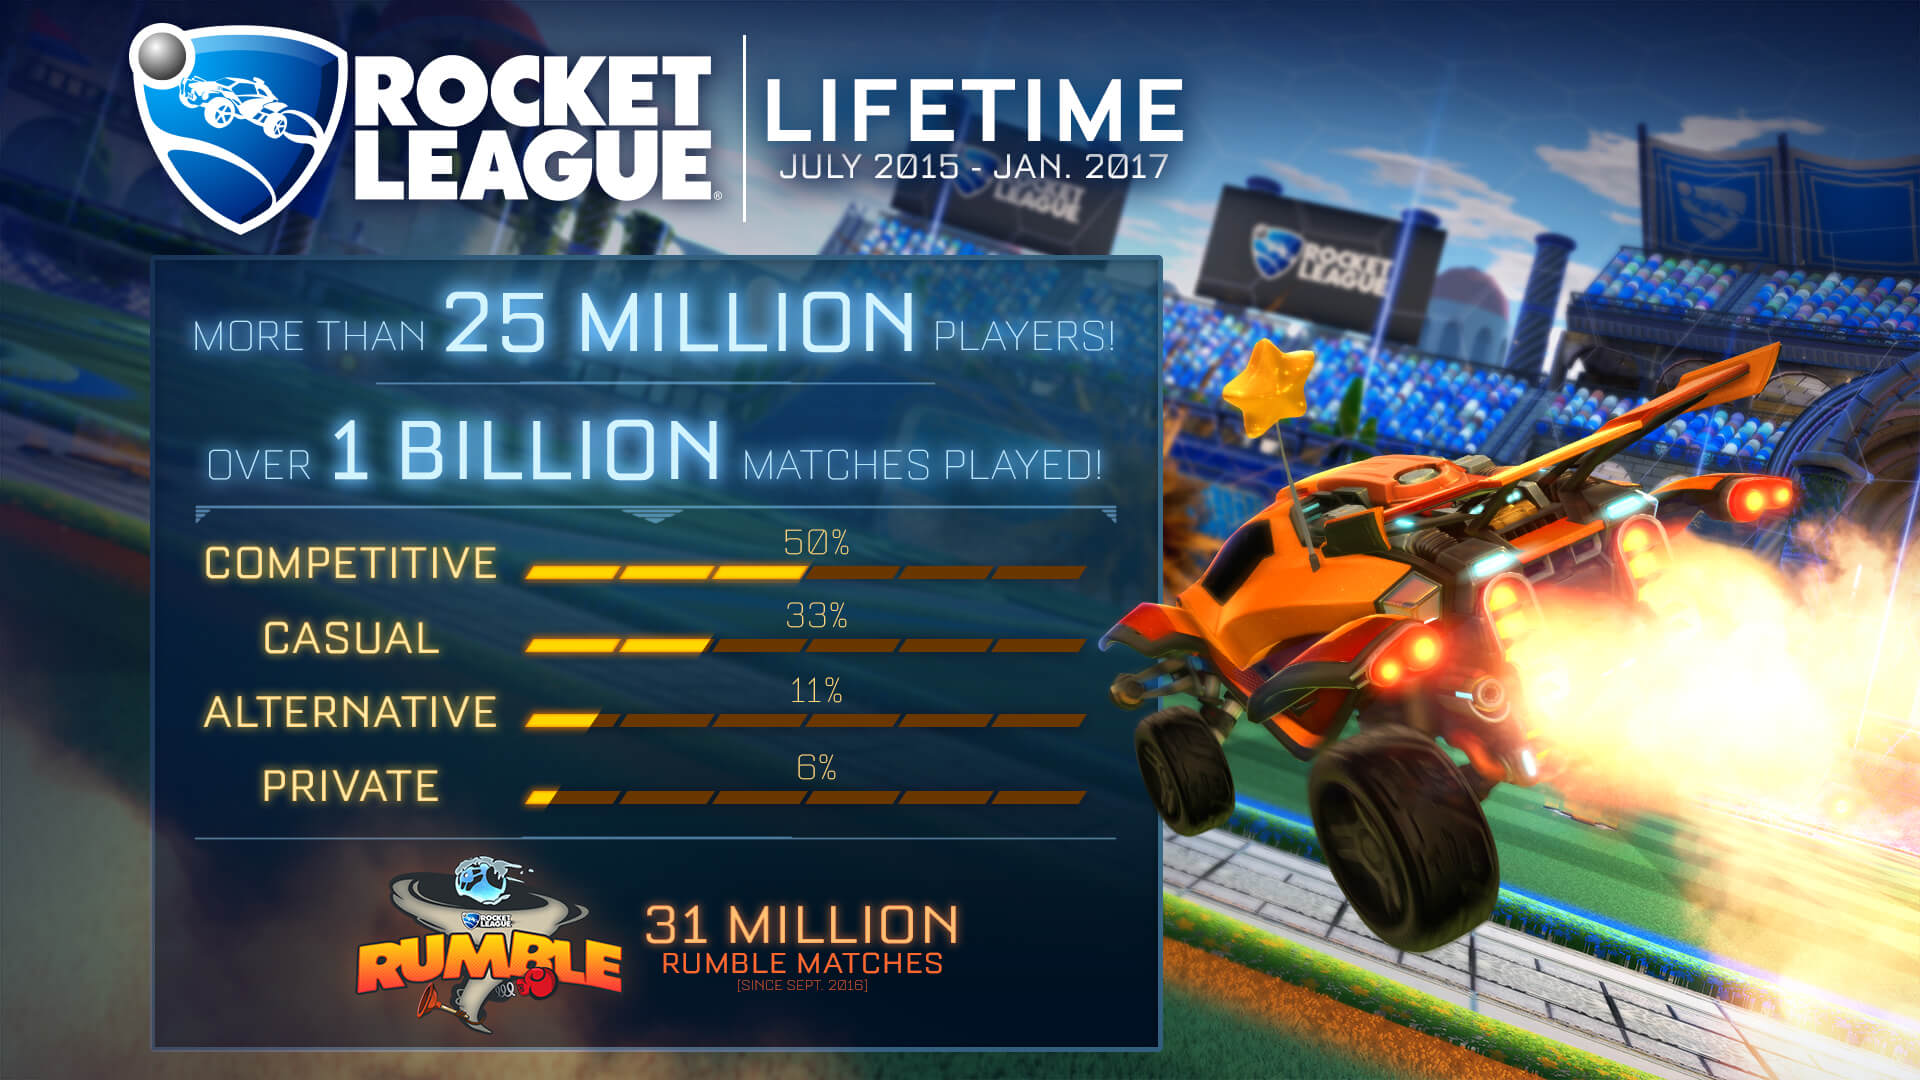 Y'all have played a lot of Rocket League.